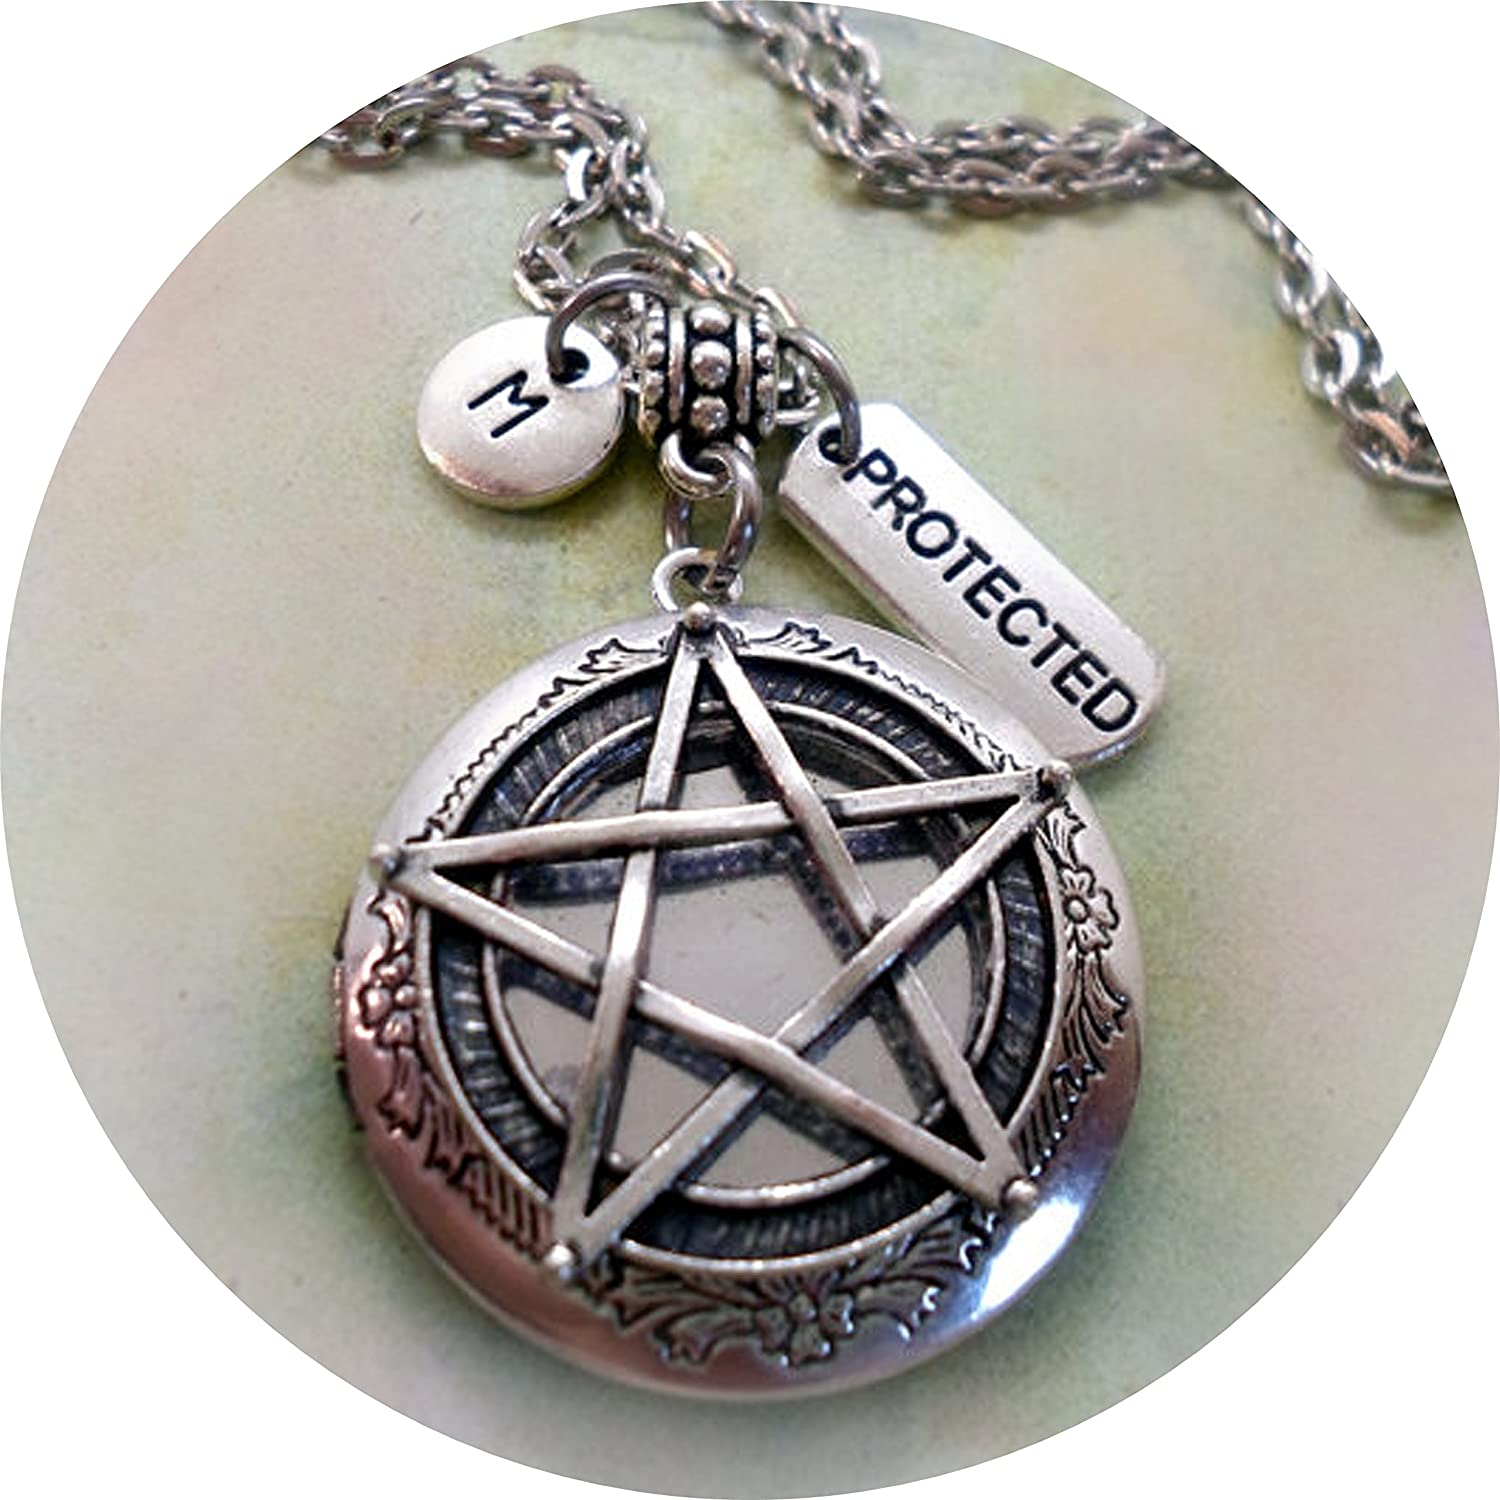 Pentacle Purse Hook Wicca Protection Amulet Pentagram Purse Hook Pentagram Bag Hook Wicca Purse Hook Pagan Purse Hook Wiccan Jewelry Gift for Man.Y119